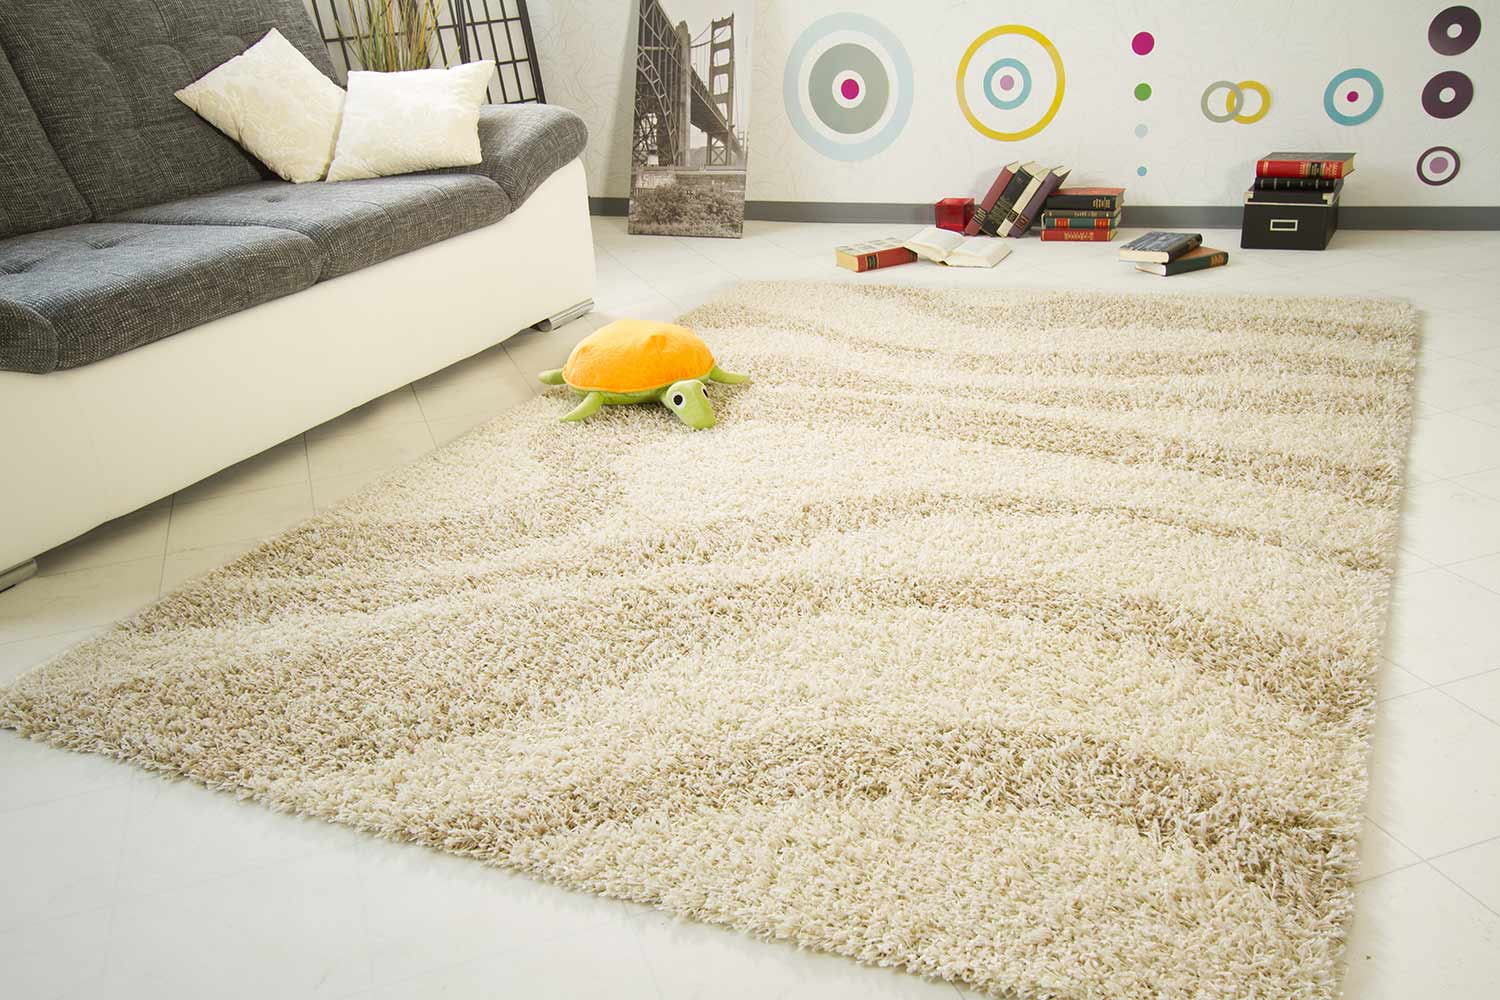 Hochflor Teppich Funny Design - Welle